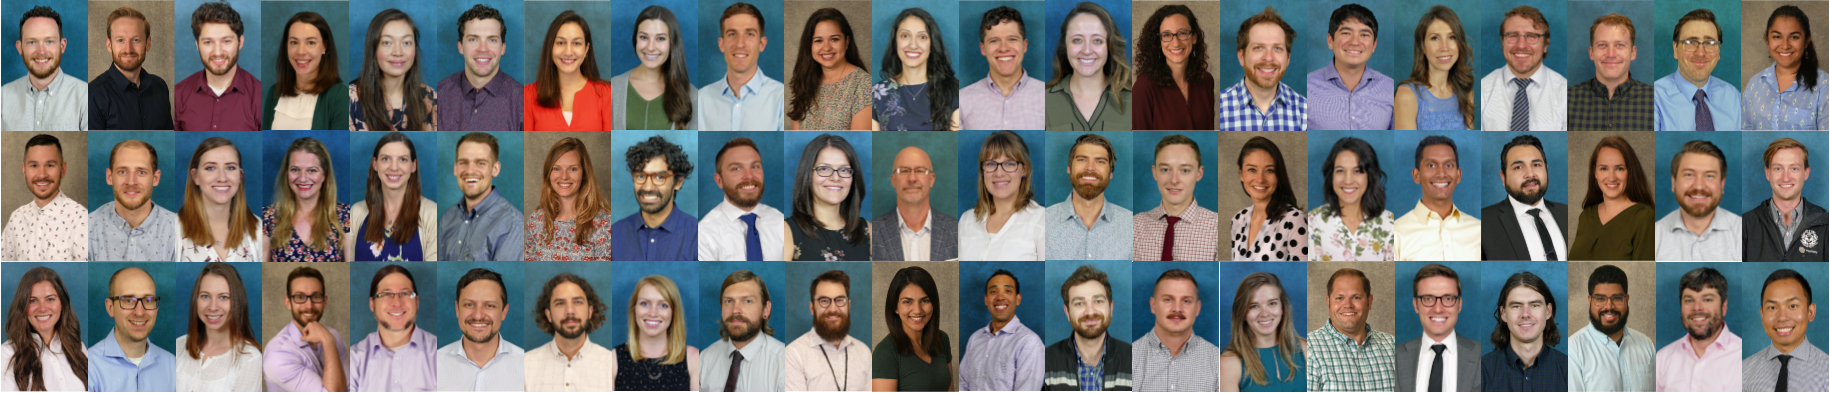 Residency/Fellowship Composite Picture 2019